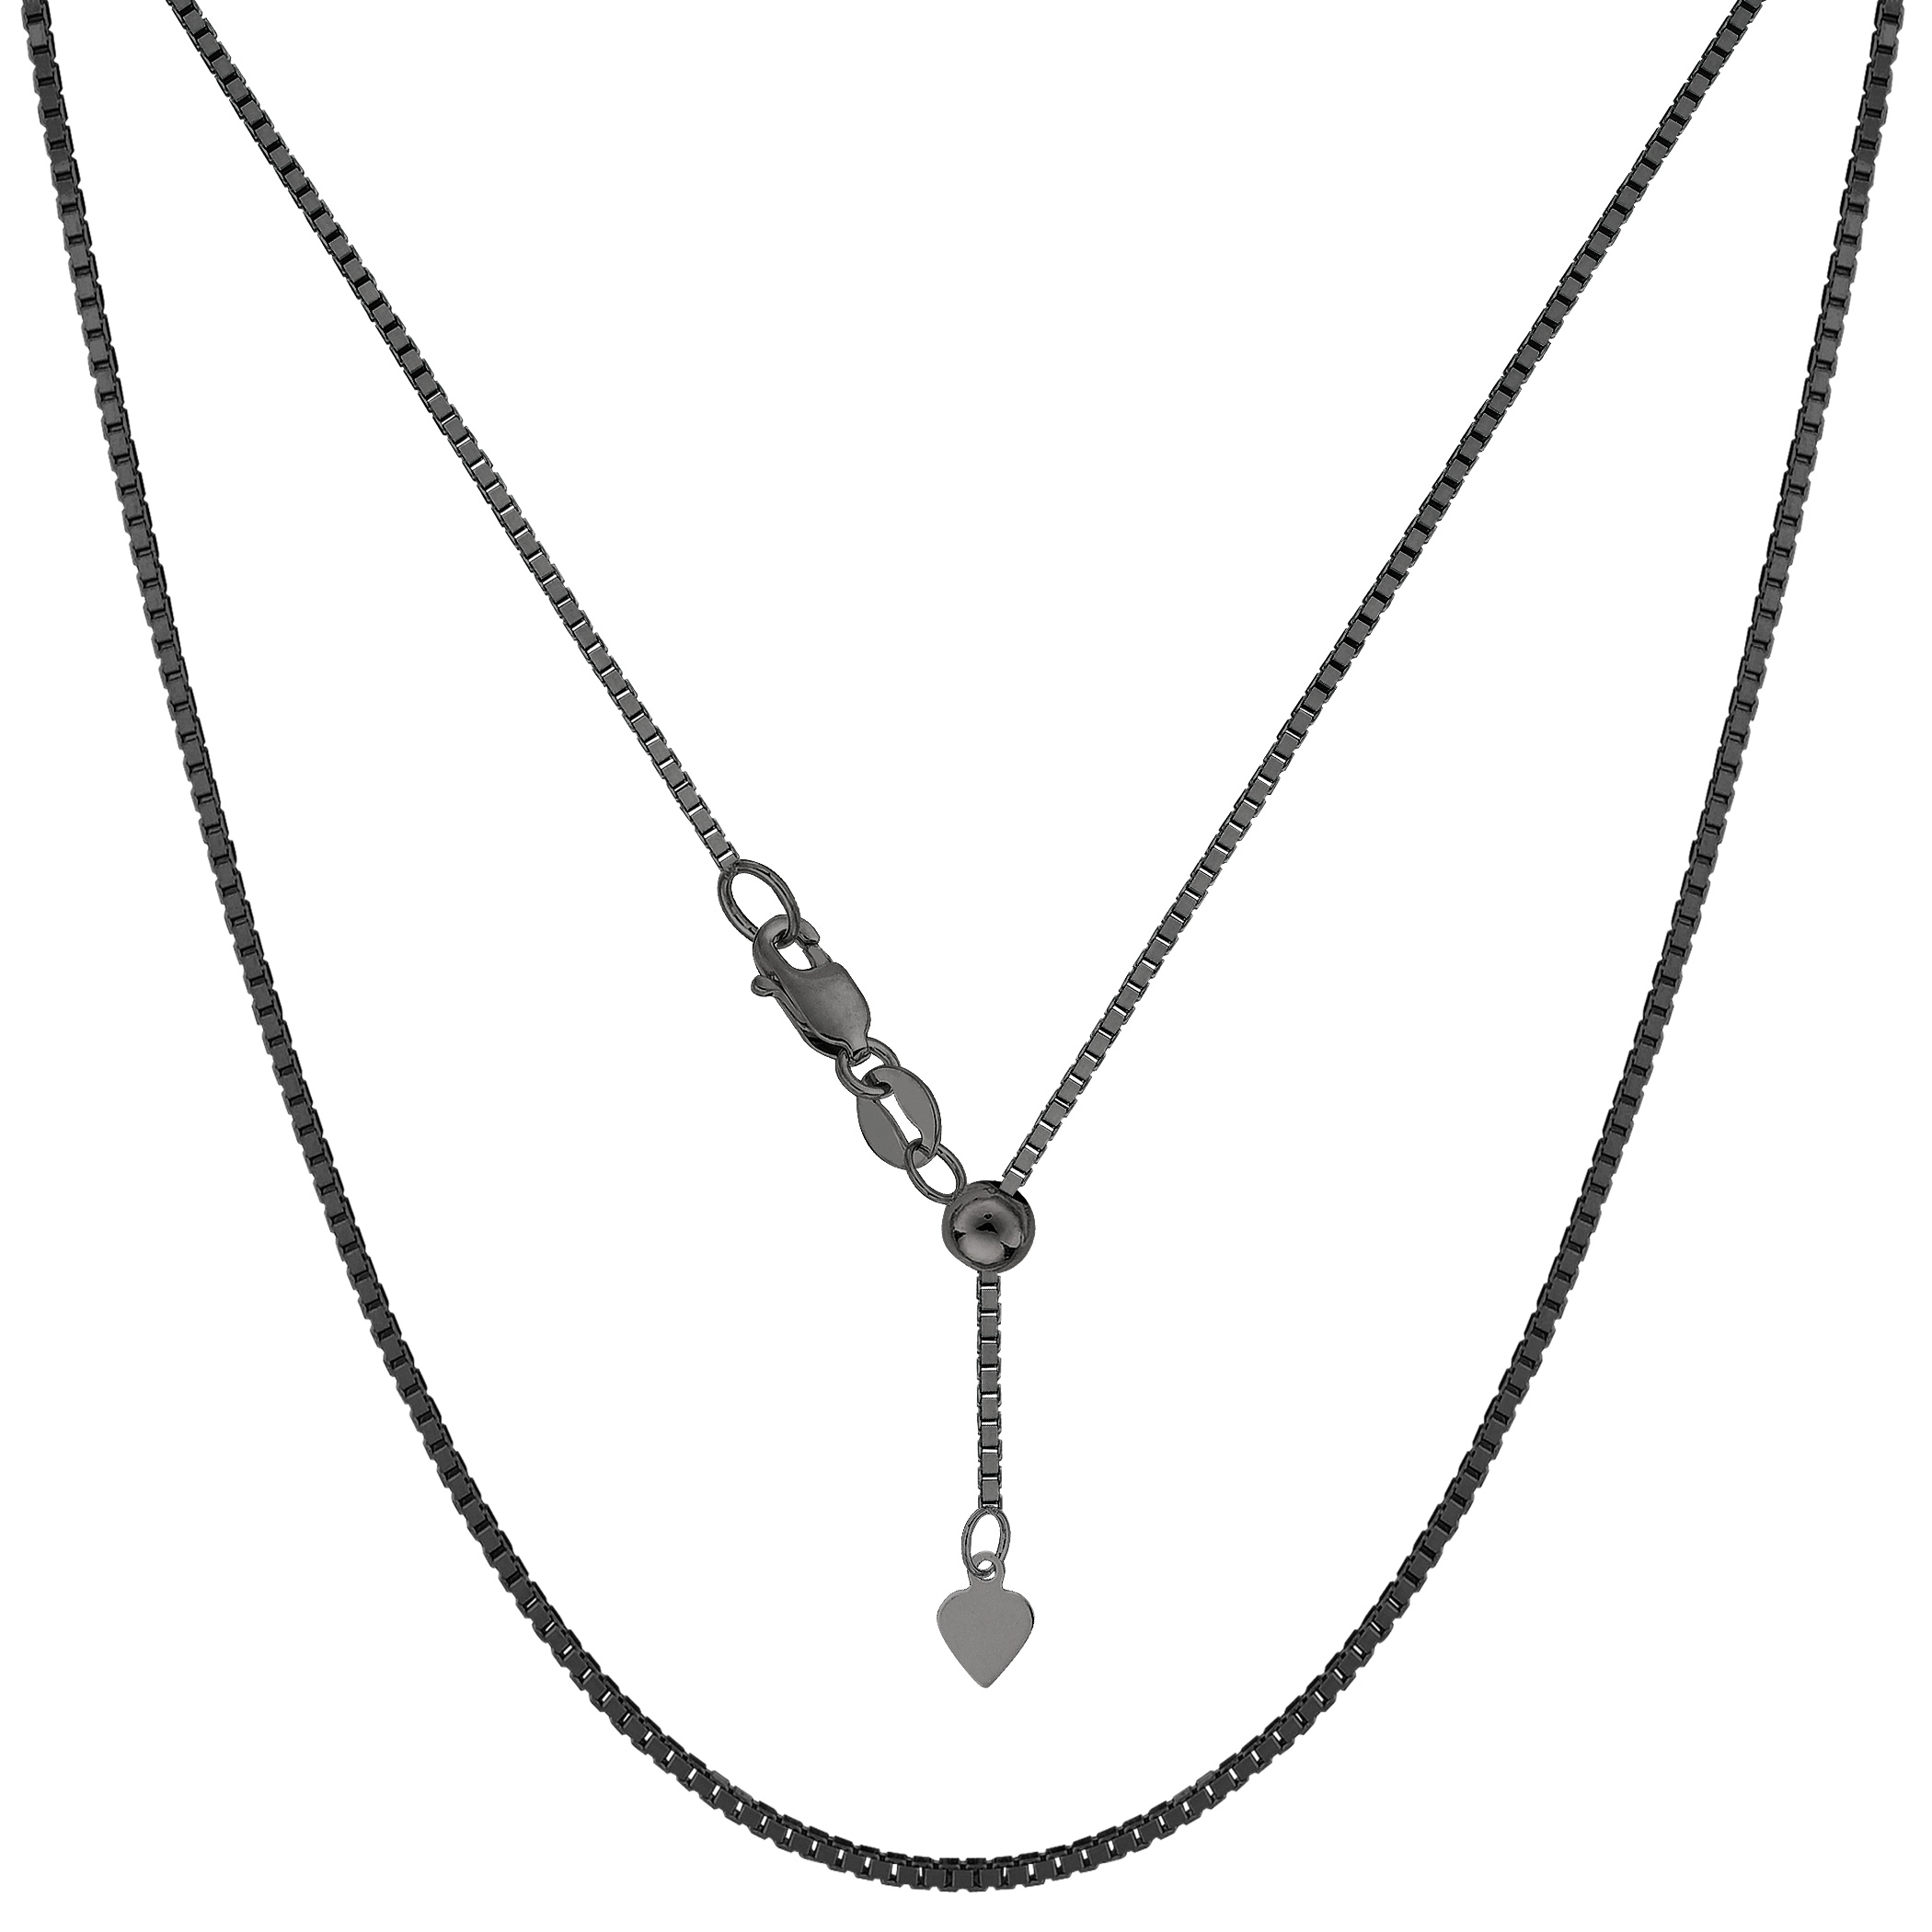 Sterling Silver Black Ruthenium Plated 22  Sliding Adjustable Box Chain Necklace, 1.4mm Using it by itself or combining it with charms and pendants, this 22 inch long adjustable box style chain is a perfect addition to any jewelry fashionista collection. This Sterling Silver chain is black Ruthenium plated to a get that dark antique look.